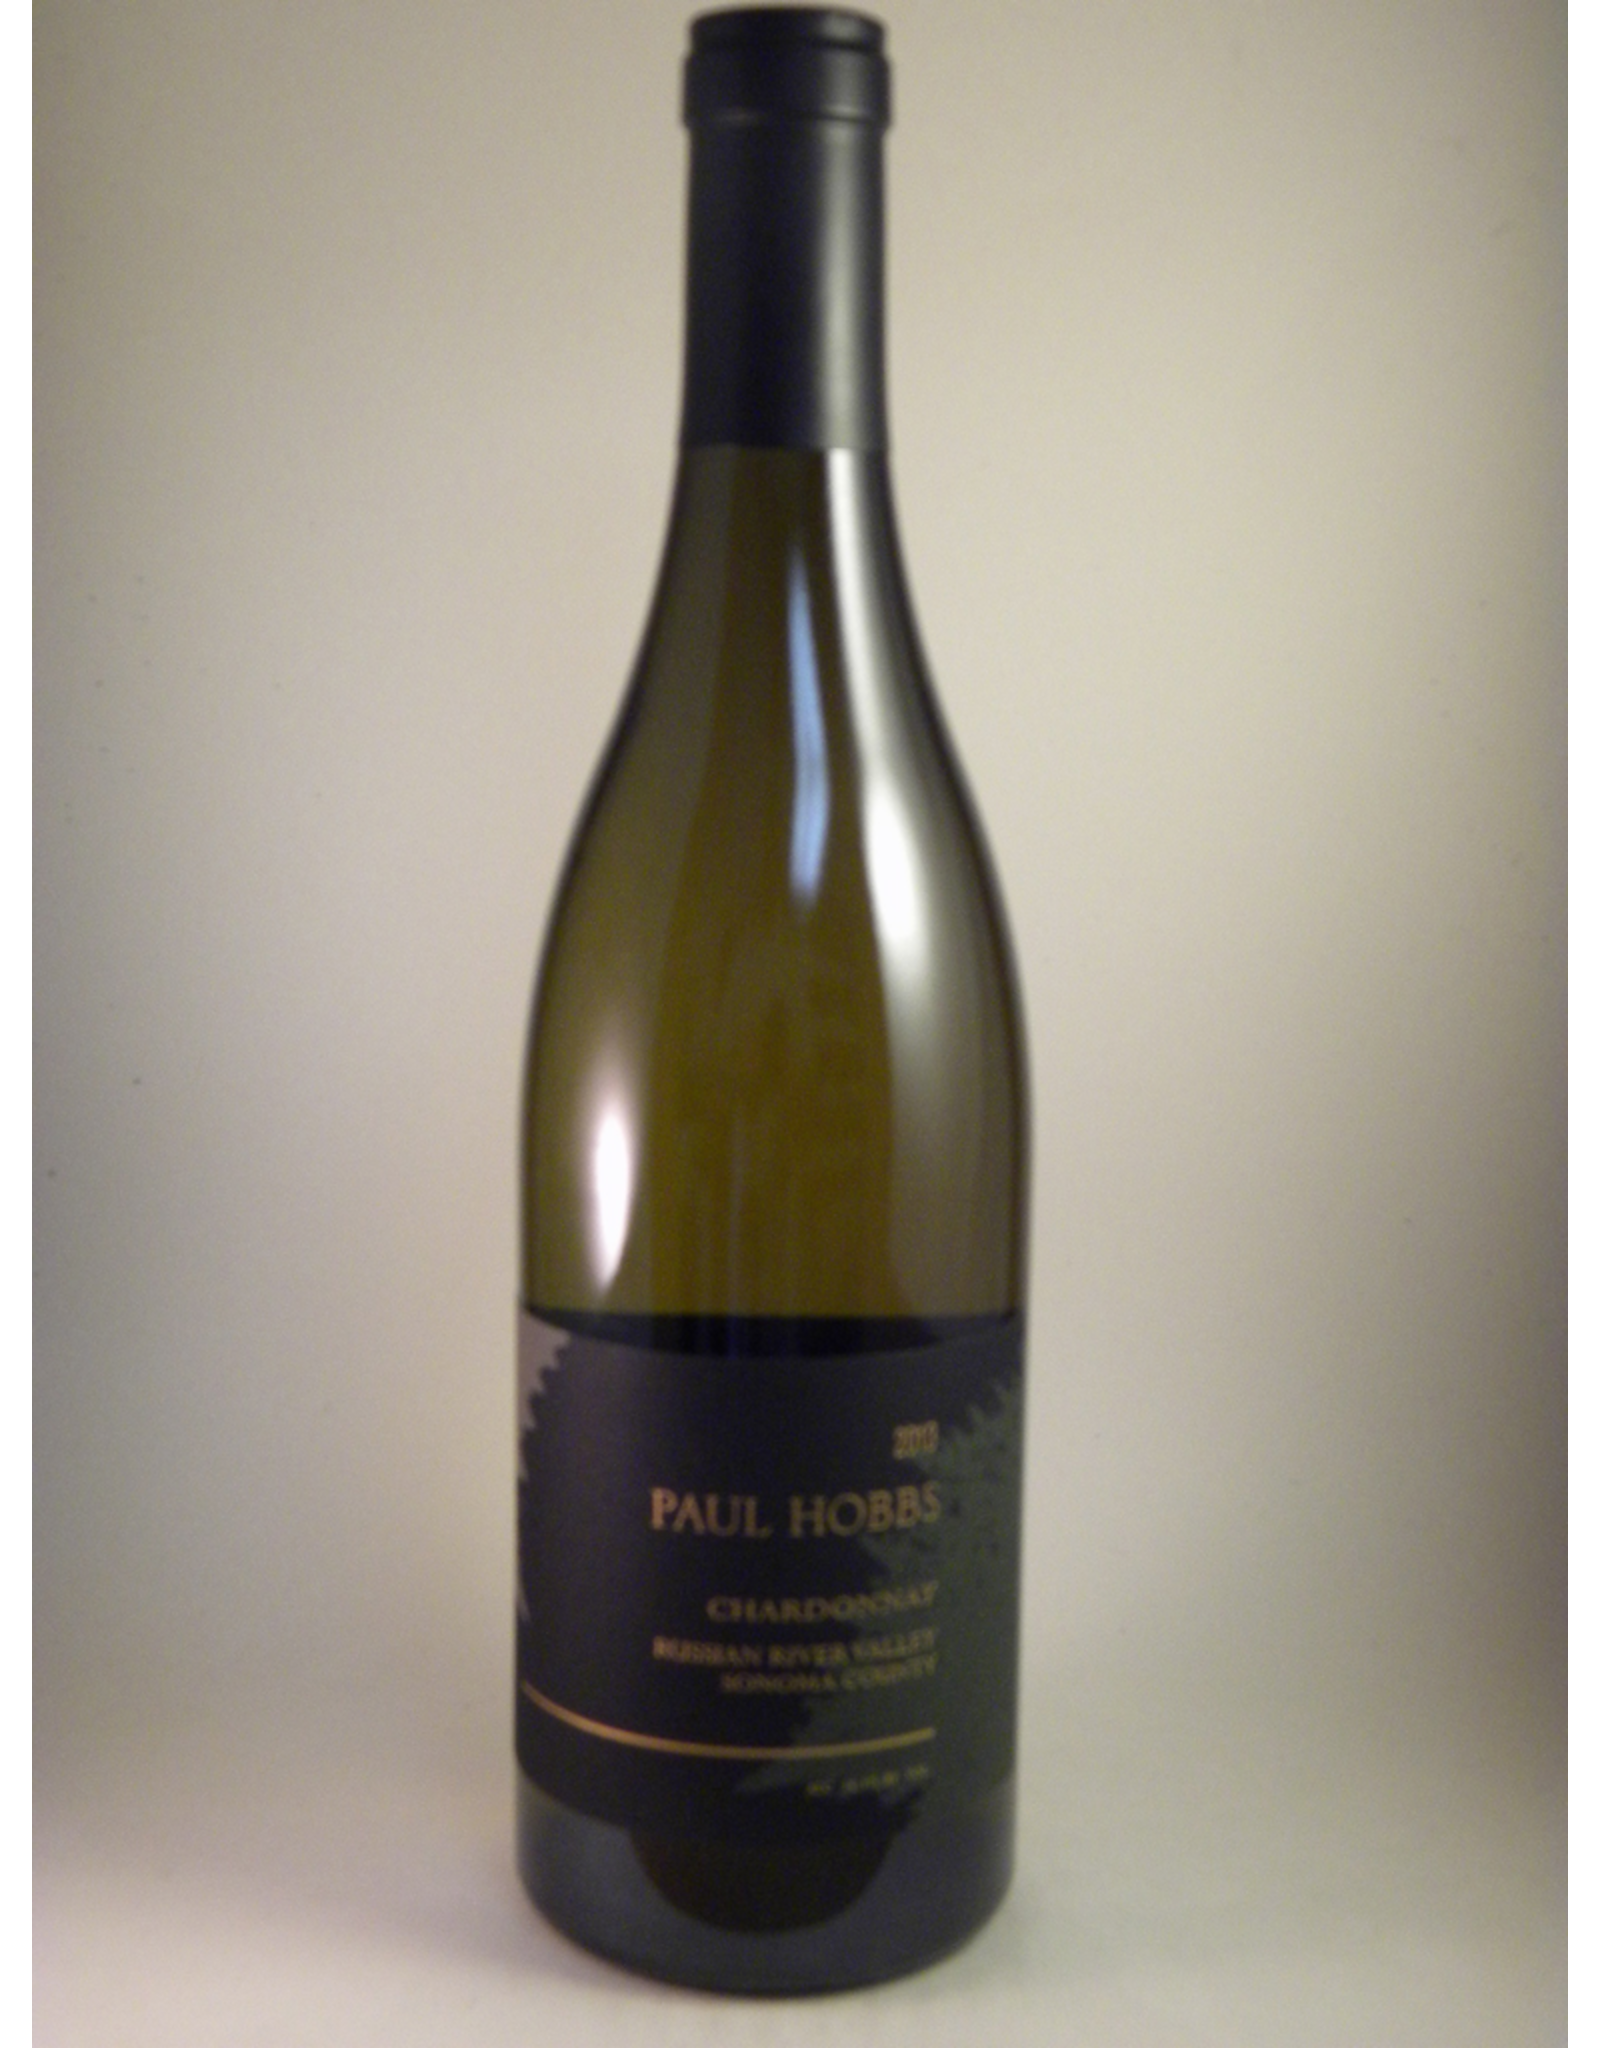 Paul Hobbs Paul Hobbs Chardonnay Russian River Valley 2017